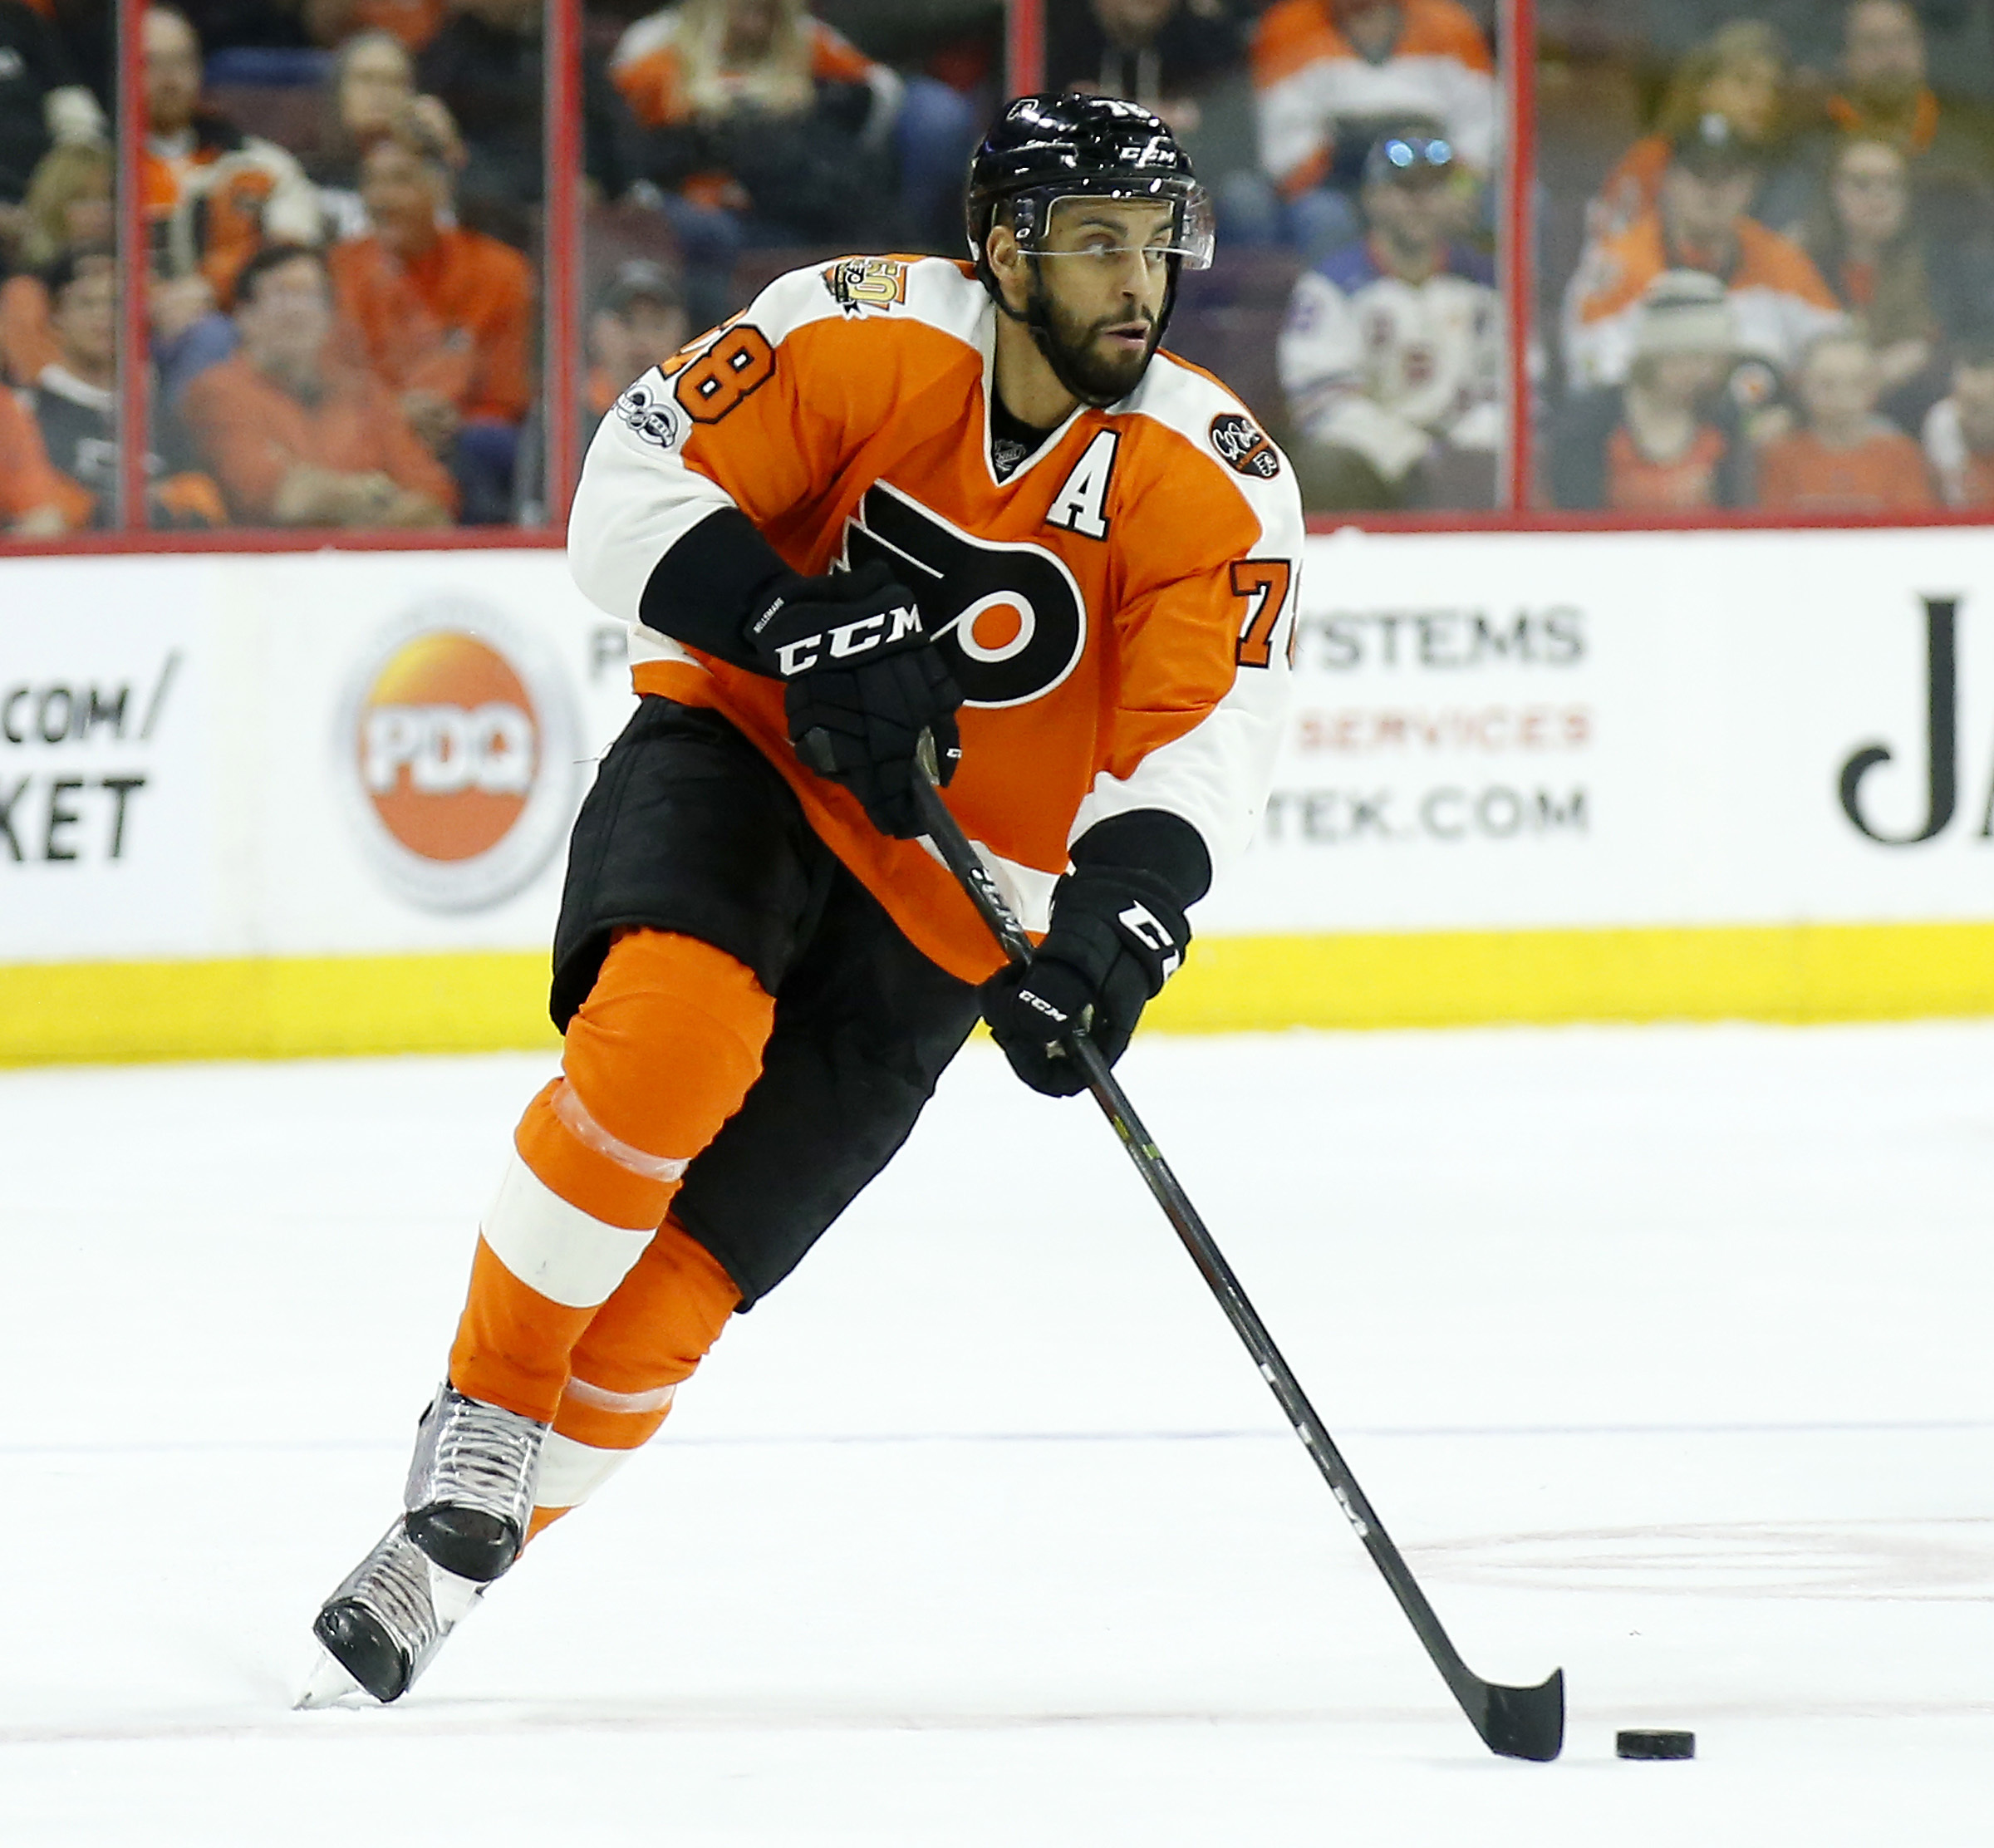 Pierre-Edouard Bellemare, who played last season with the Flyers, will meet the Flyers´ fan club during the team´s road trip.